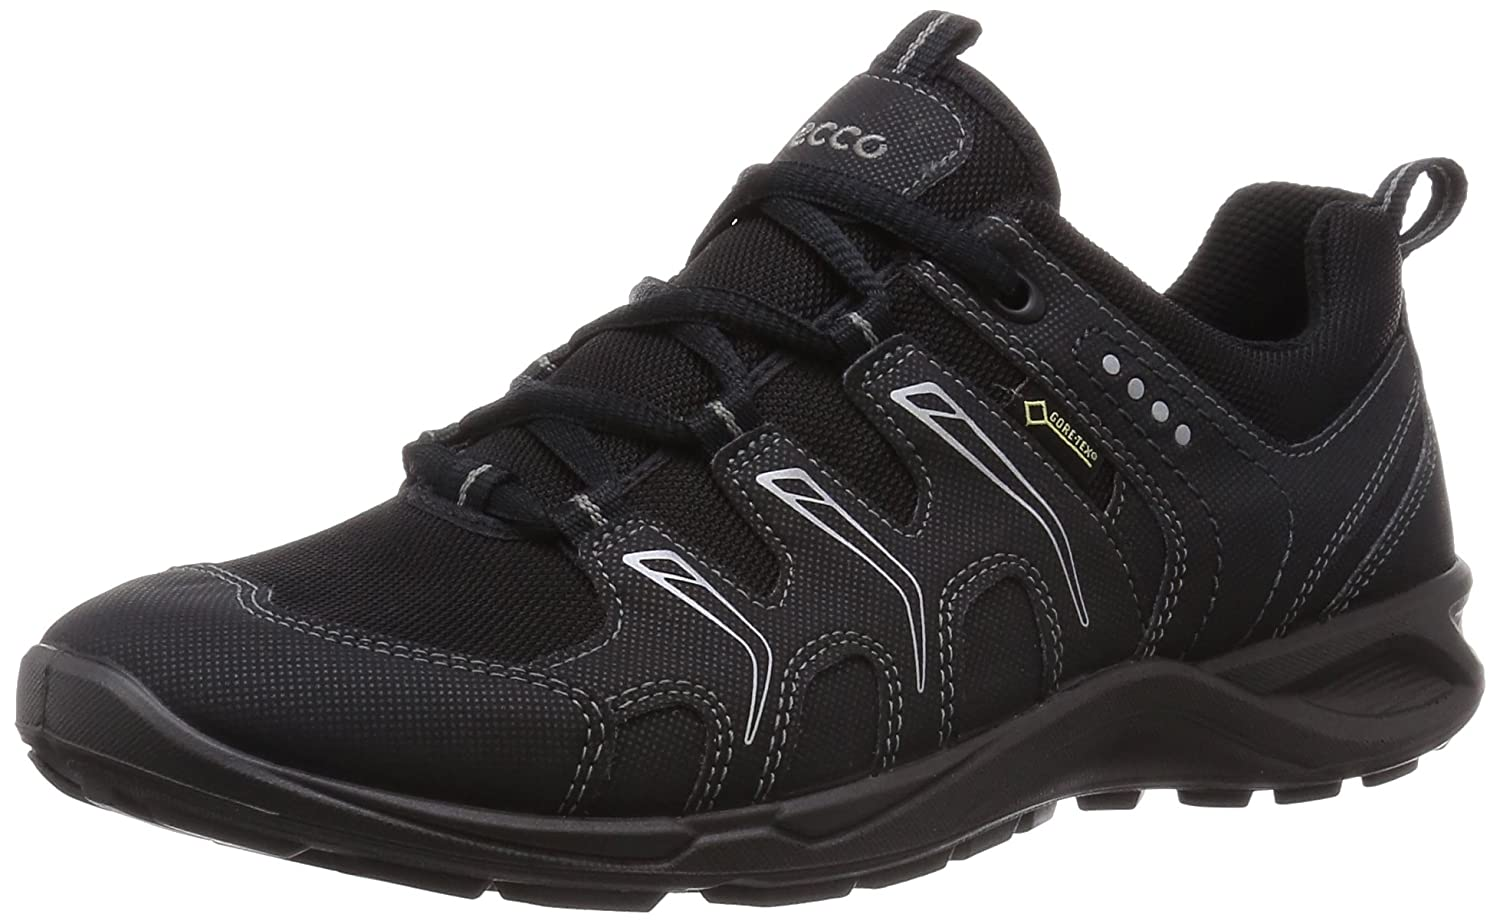 Ecco Terracruise Black/Black Synthetic/Textil 841043 - Zapatillas de Fitness para Mujer, Color Gris, Talla 36